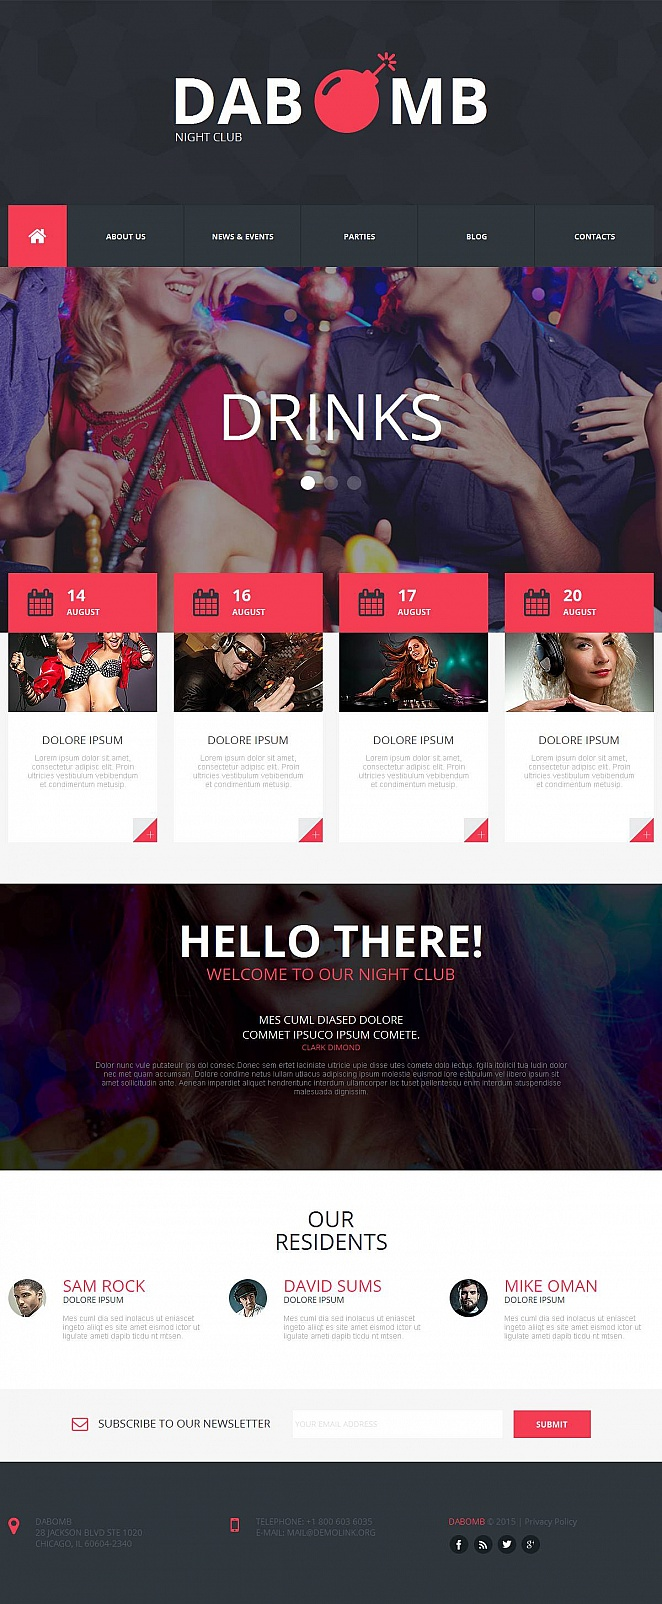 Metro Style Web Template for Night Club - image